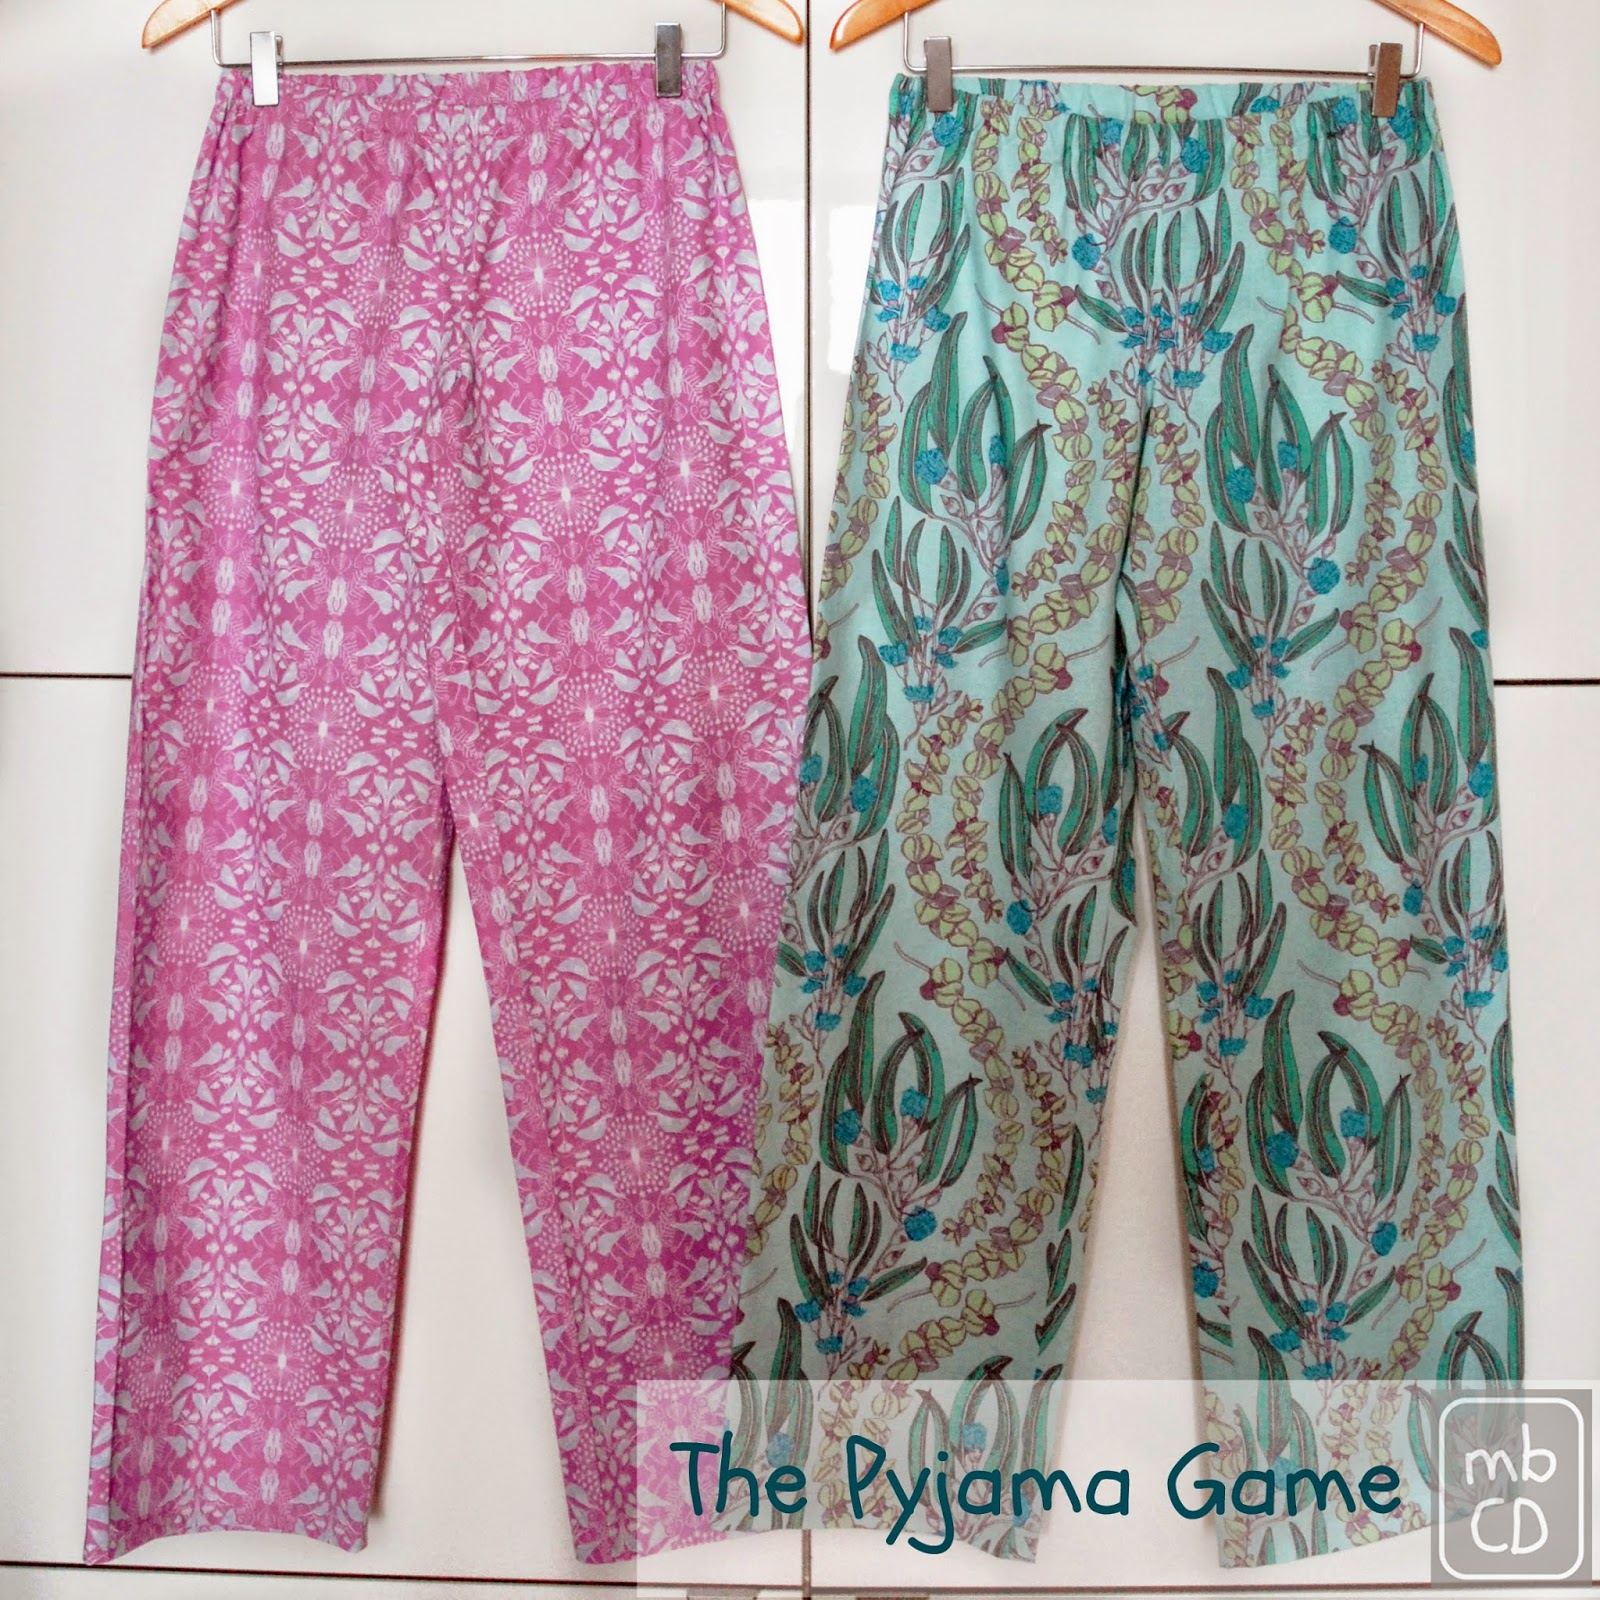 The Pyjama Game - HMLP Feature